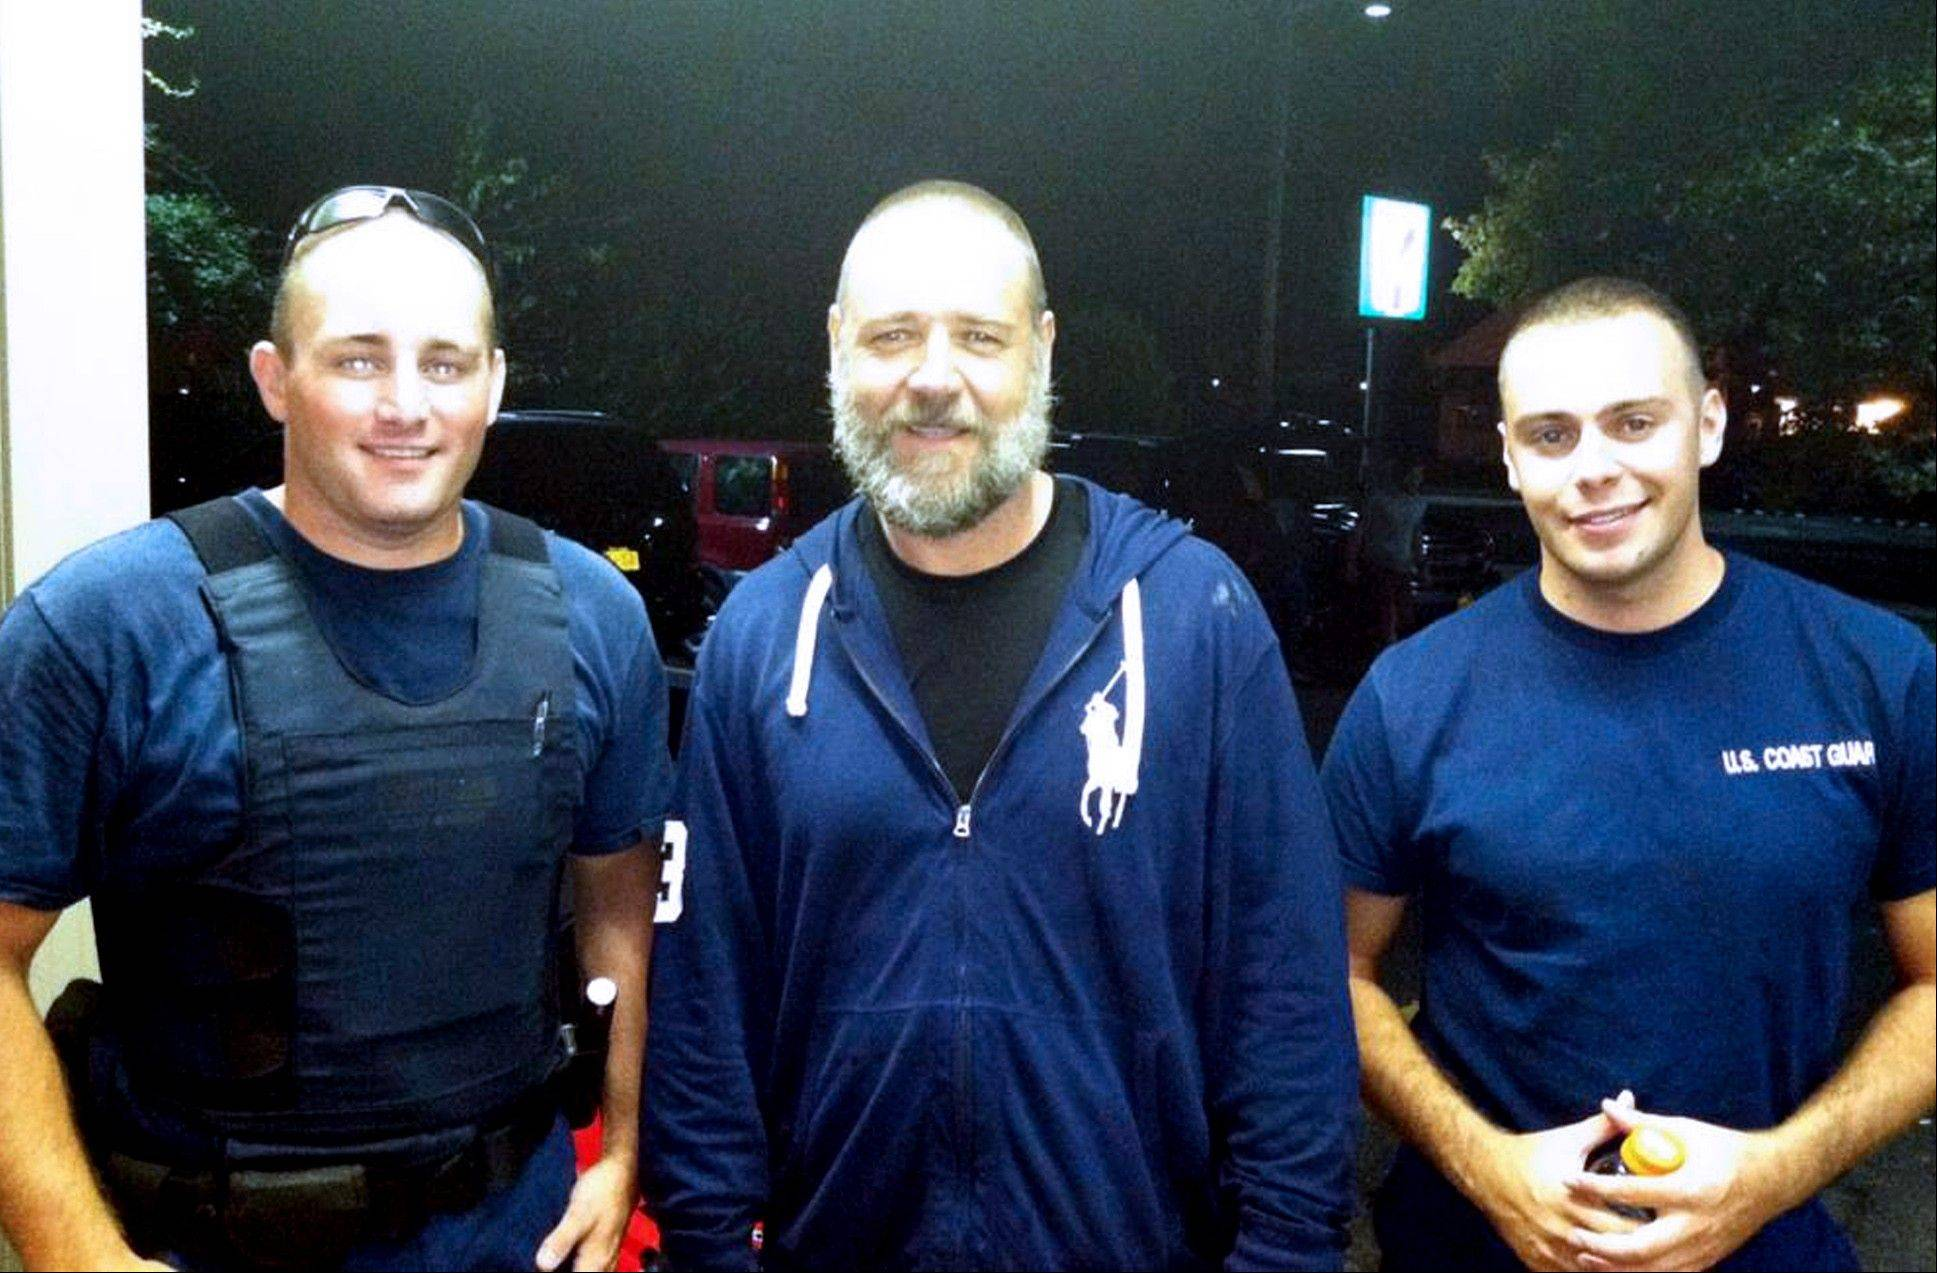 A photo provided by the U.S. Coast Guard shows Russell Crowe, center, with Coast Guard petty officers Robert Swieciki, left, and Thomas Watson Sunday Sept. 2, 2012. Crowe and a friend became disoriented while kayaking in Long Island Sound Sunday and called the Coast Guard for assistance.